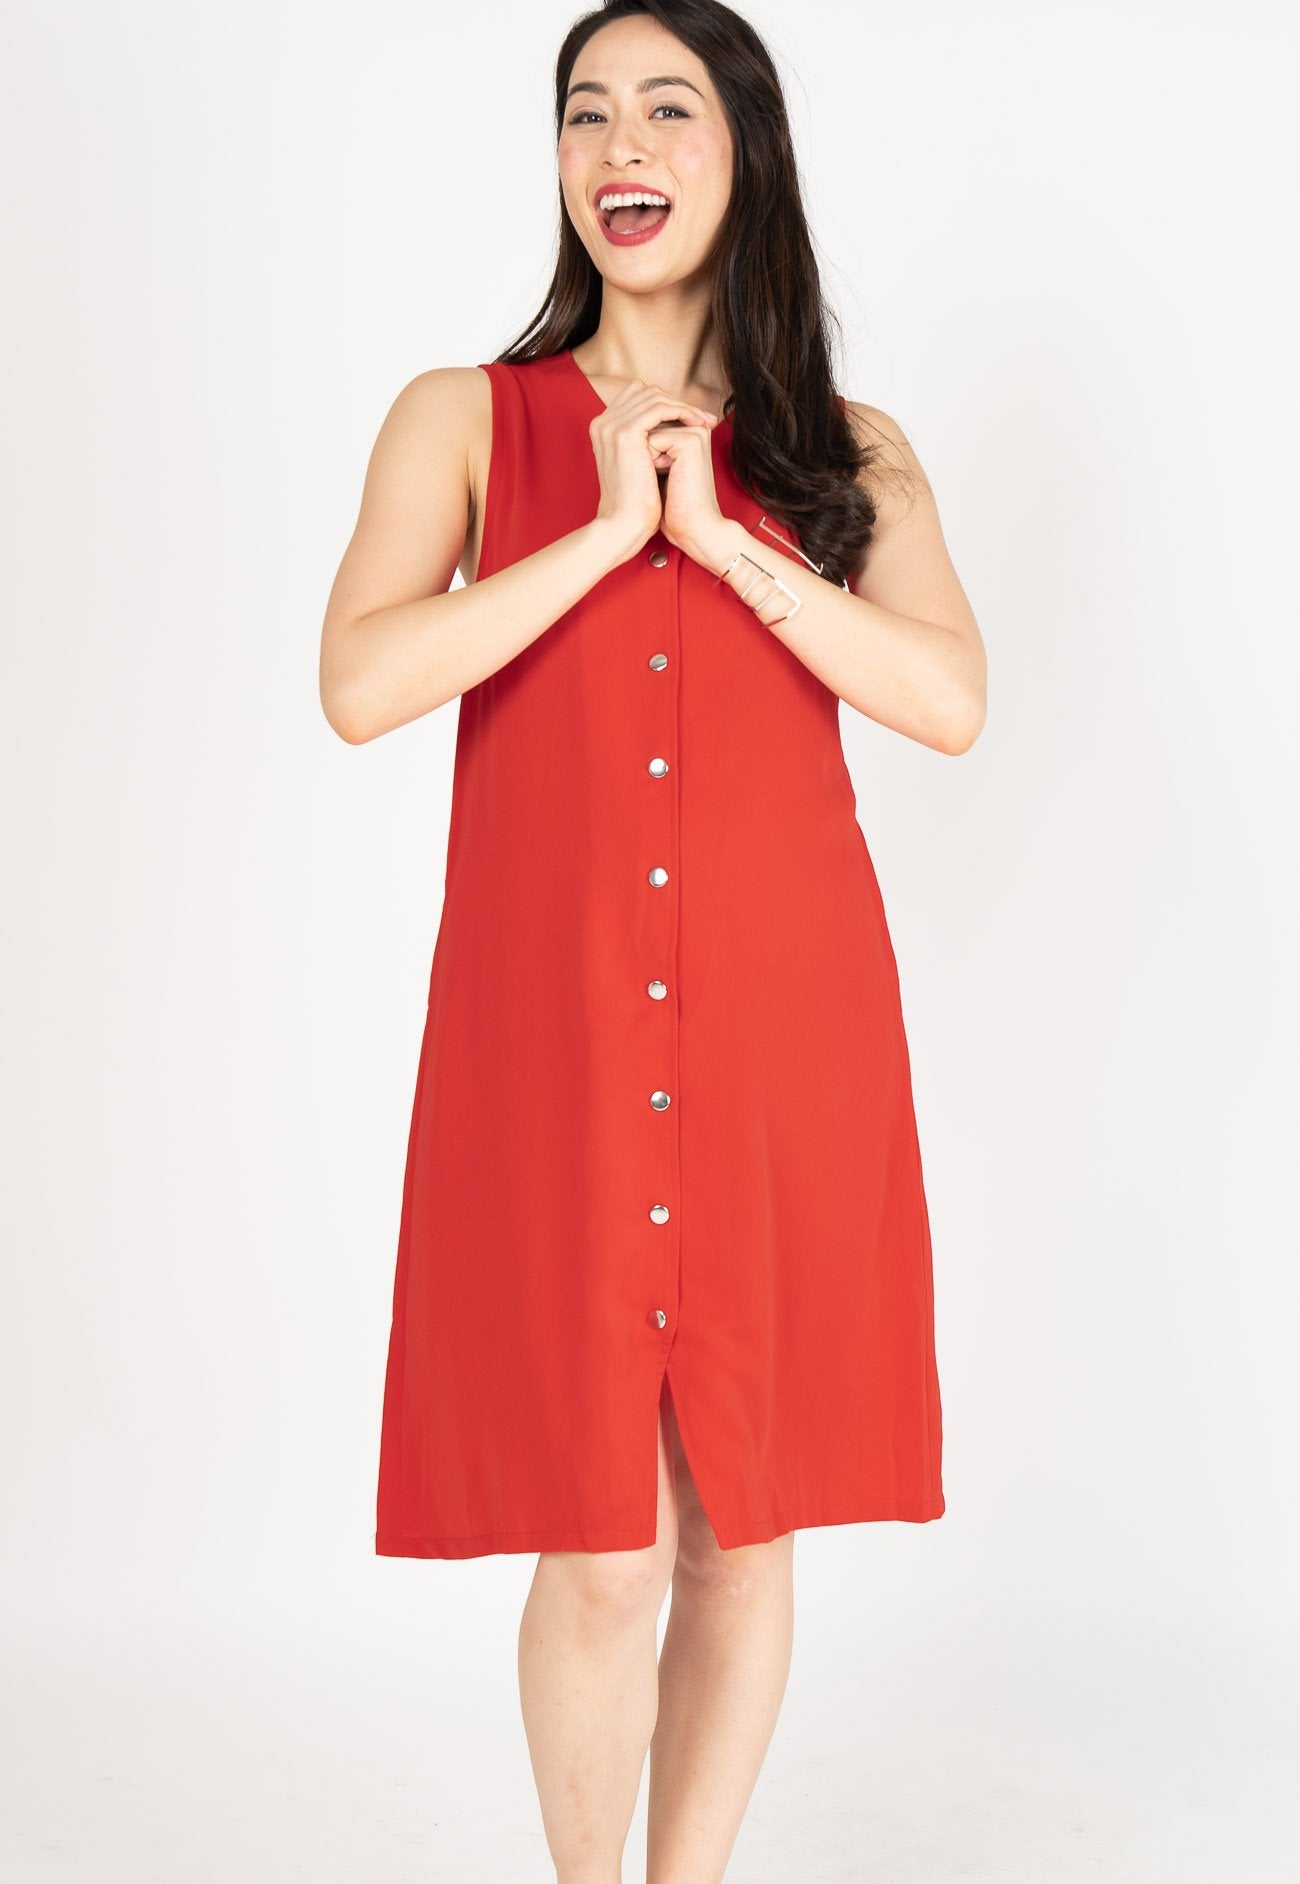 Understated Girlboss Nursing Dress in Chilli Red Nursing Wear Mothercot